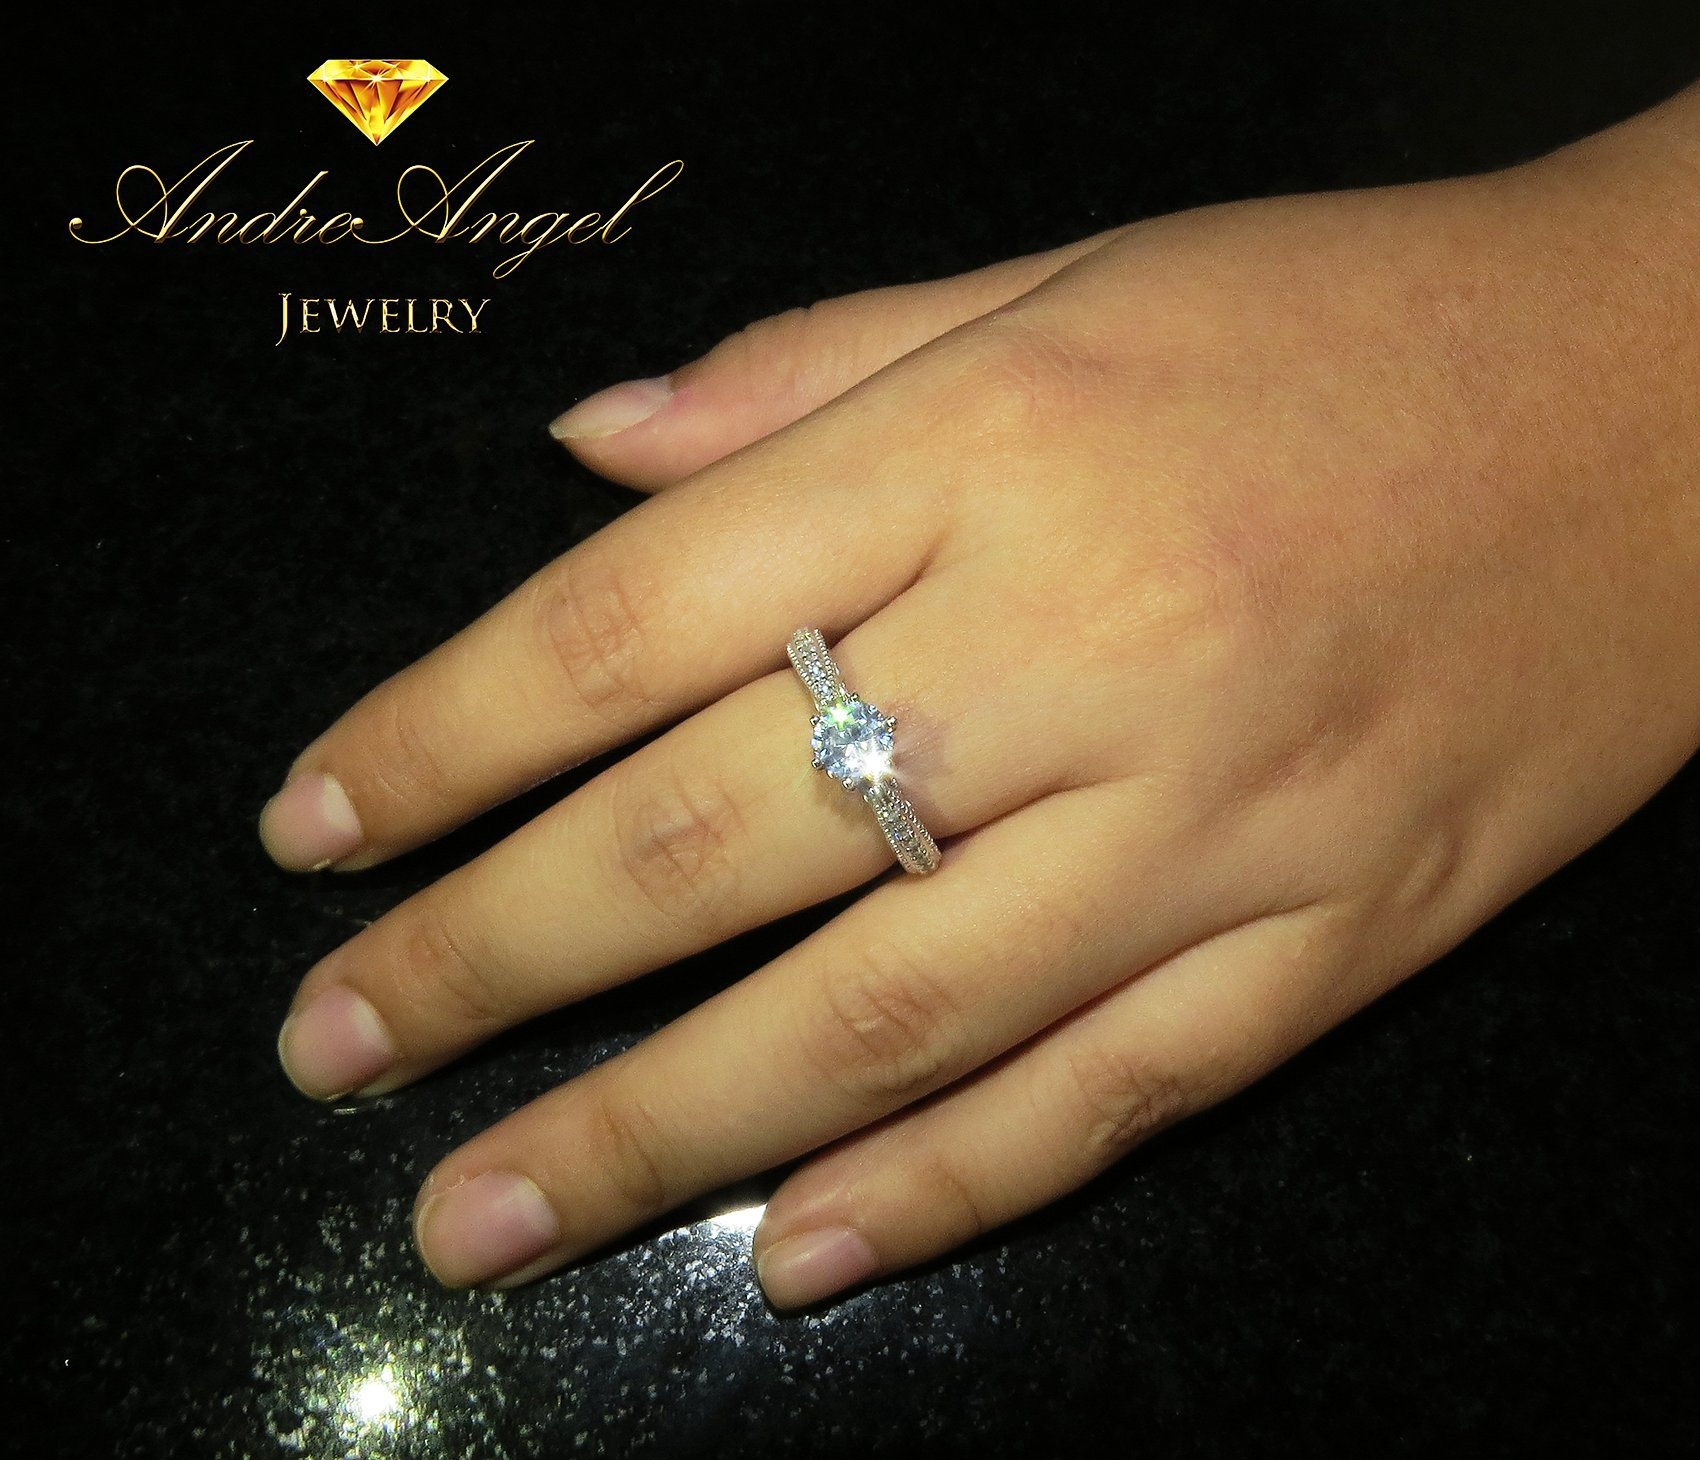 AndreAngel Women Ring White Gold 18K Princess Cut/Lab Diamond 6 mm Carat Cubic Zirconia AAA+/Bridal Birthday Dating Gift Anniversary Promise Engagement or Wedding Mother's Day (7) by AndreAngel (Image #1)